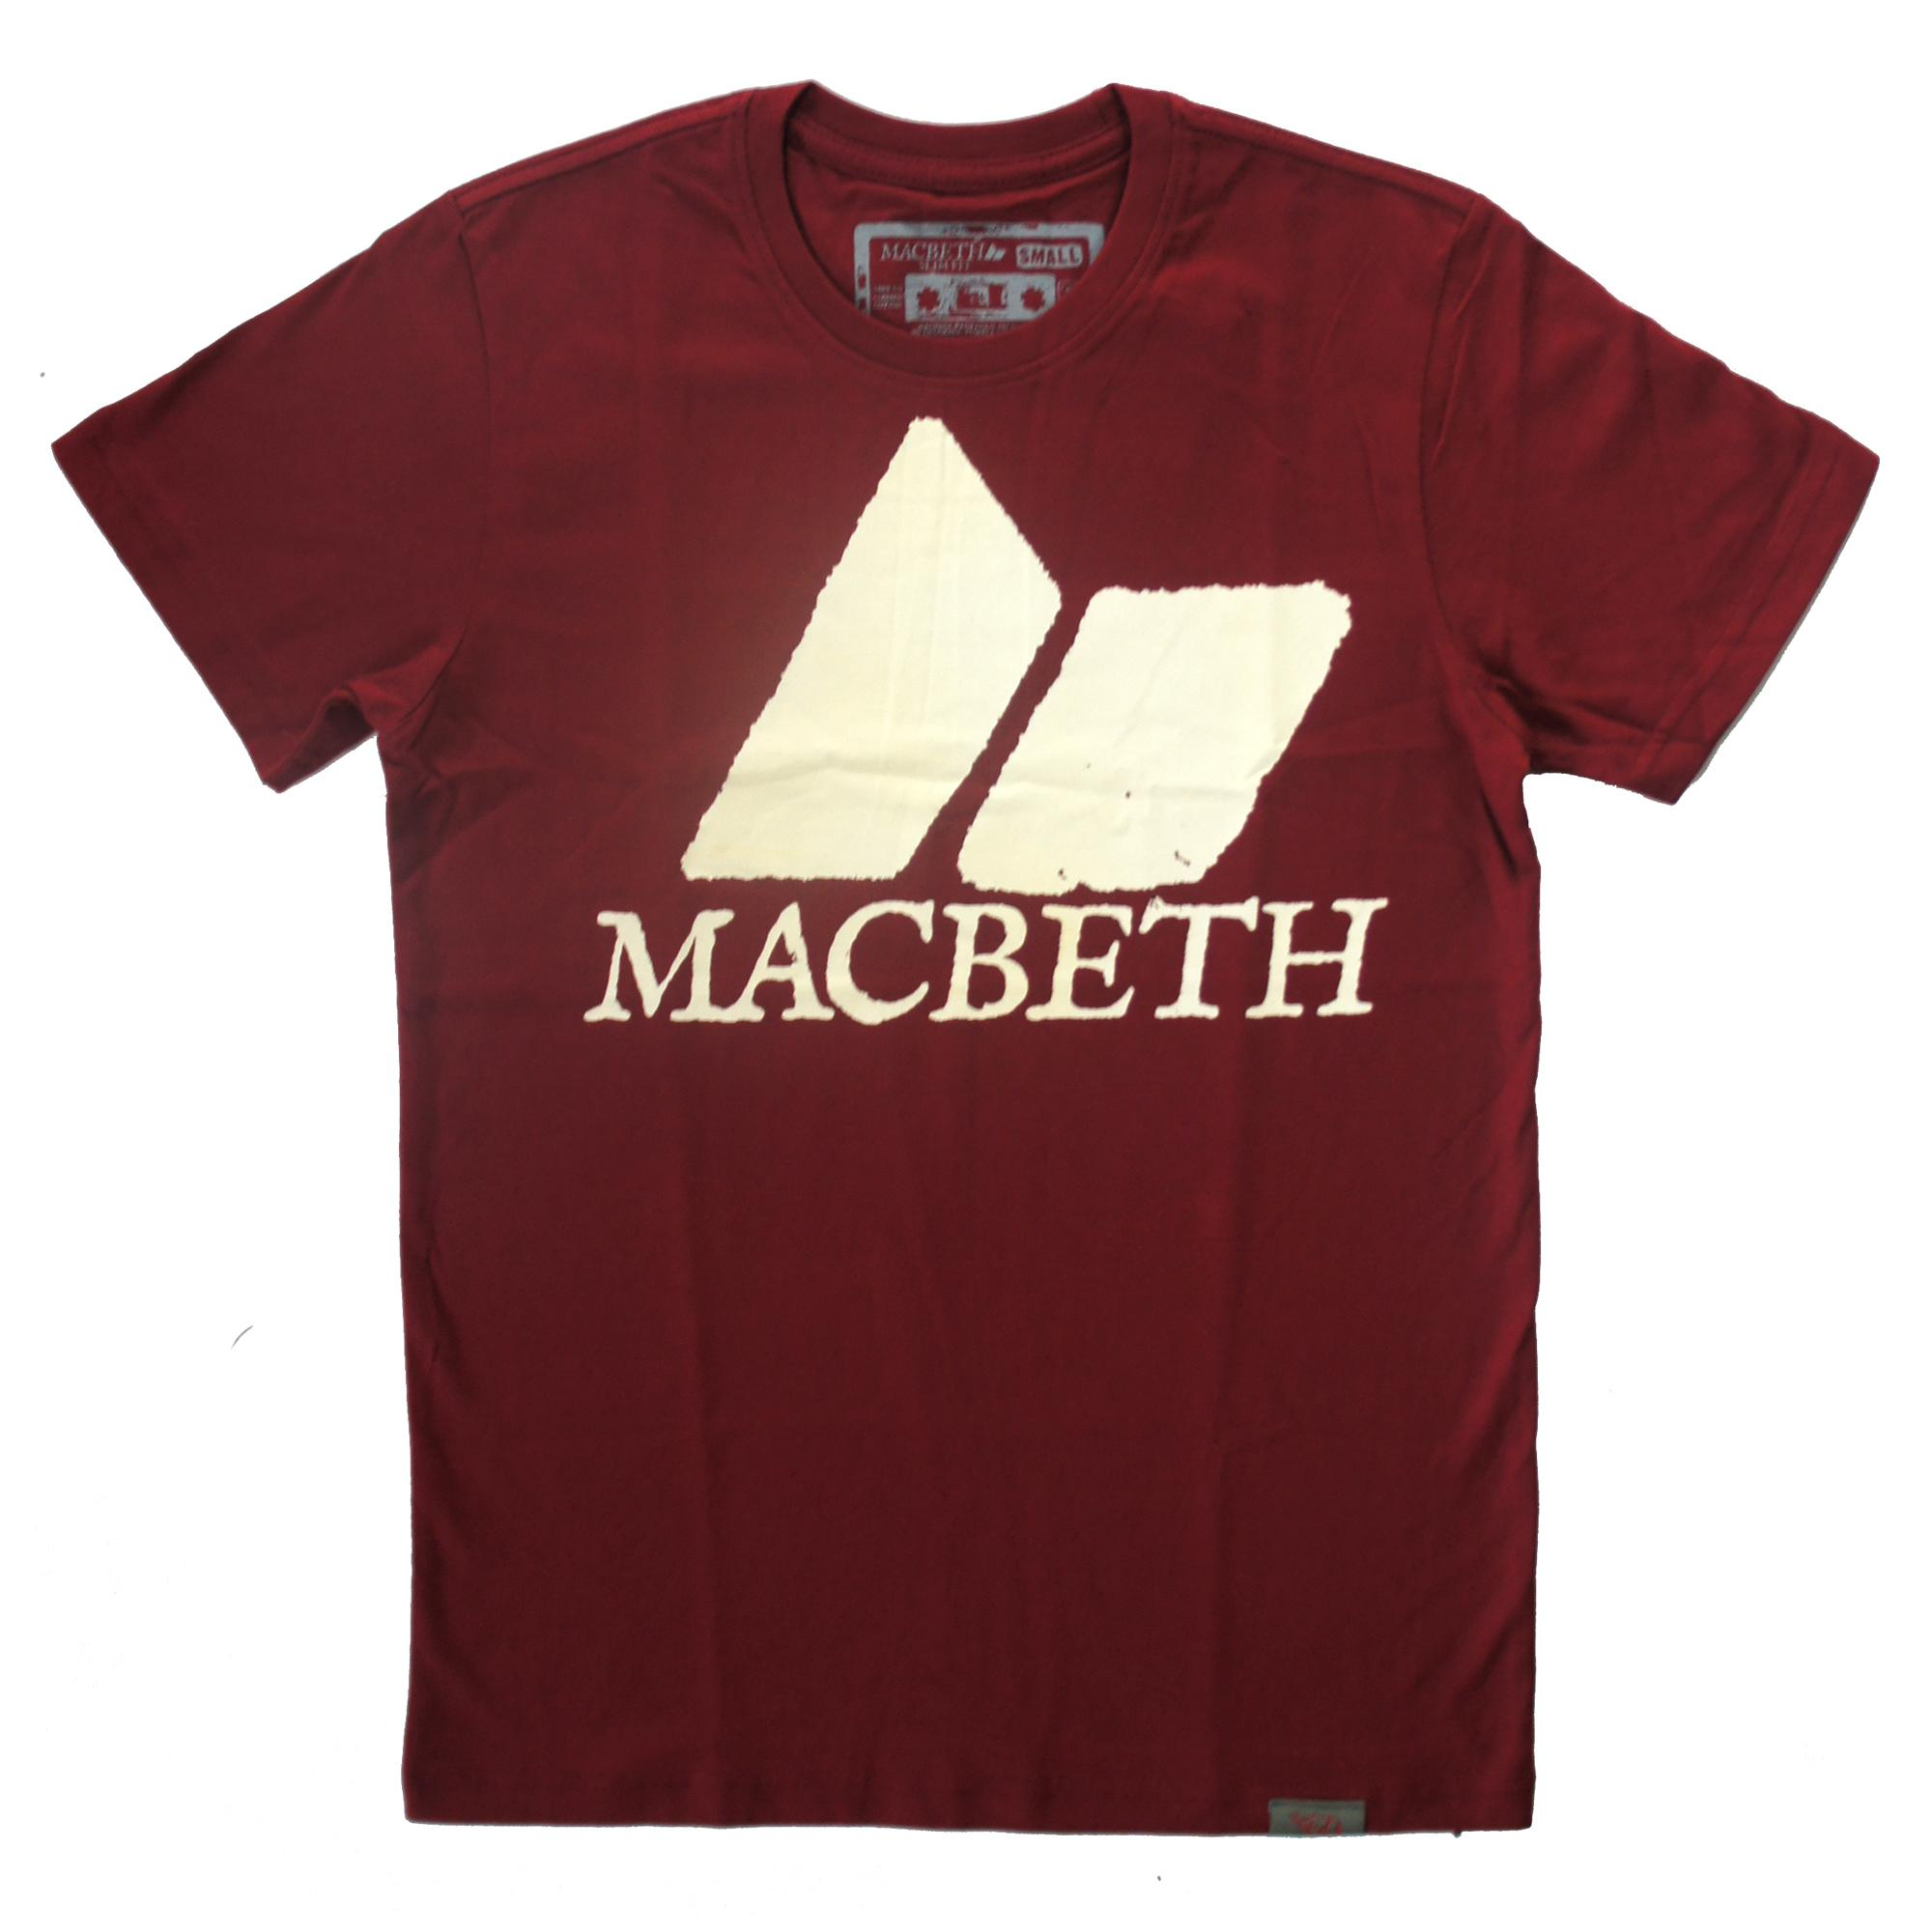 86fe0e8f Macbeth Philippines: Macbeth price list - Hats, Shirts & Polos for ...